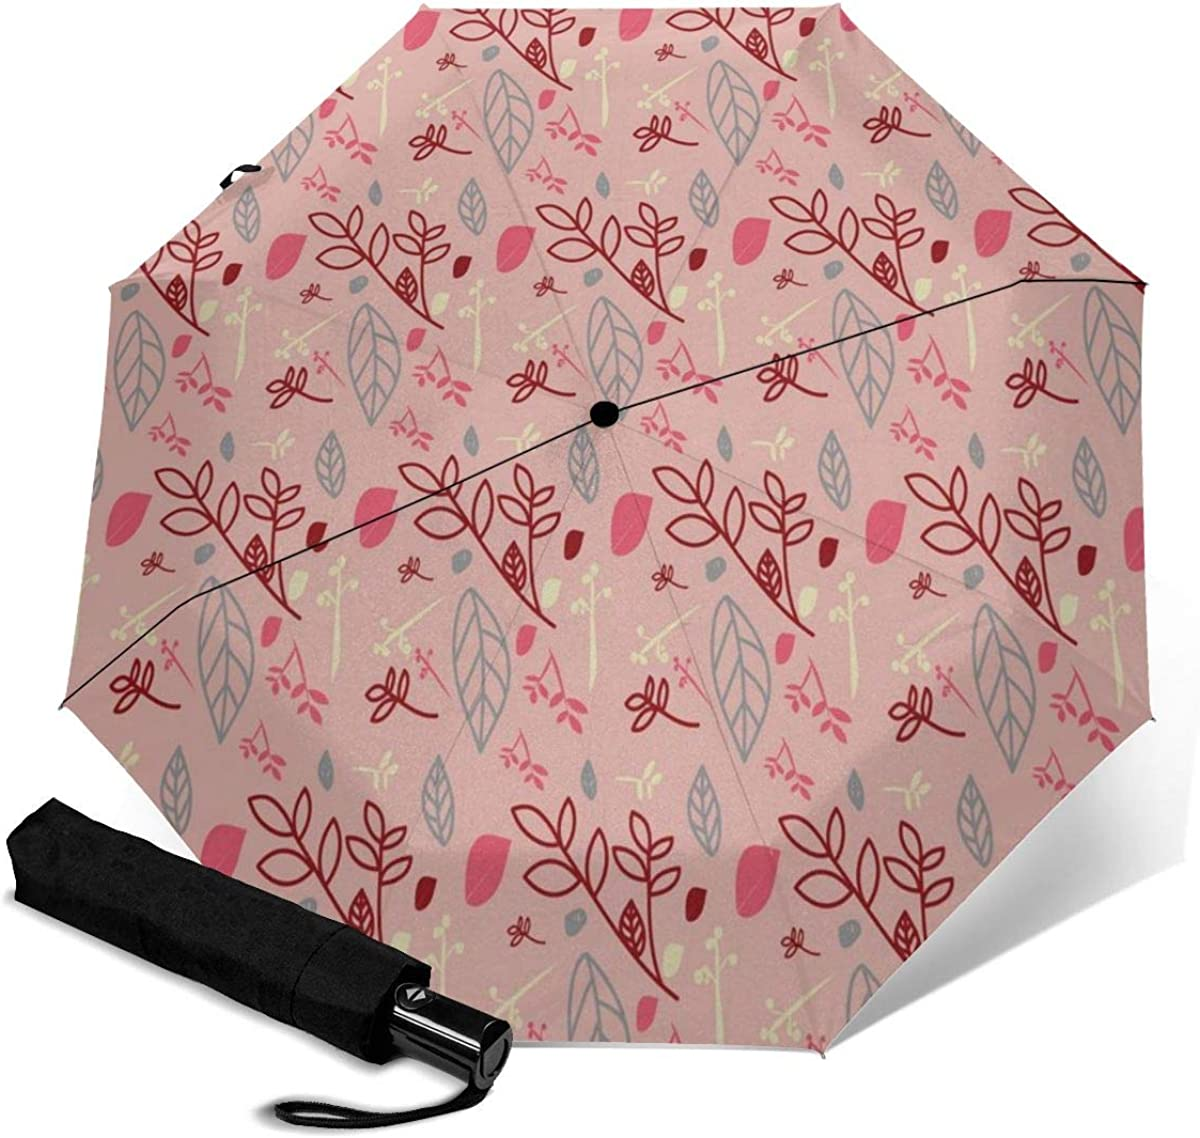 Branches Leaves Pink Wallpaper Compact Travel Umbrella Windproof Reinforced Canopy 8 Ribs Umbrella Auto Open And Close Button Personalized